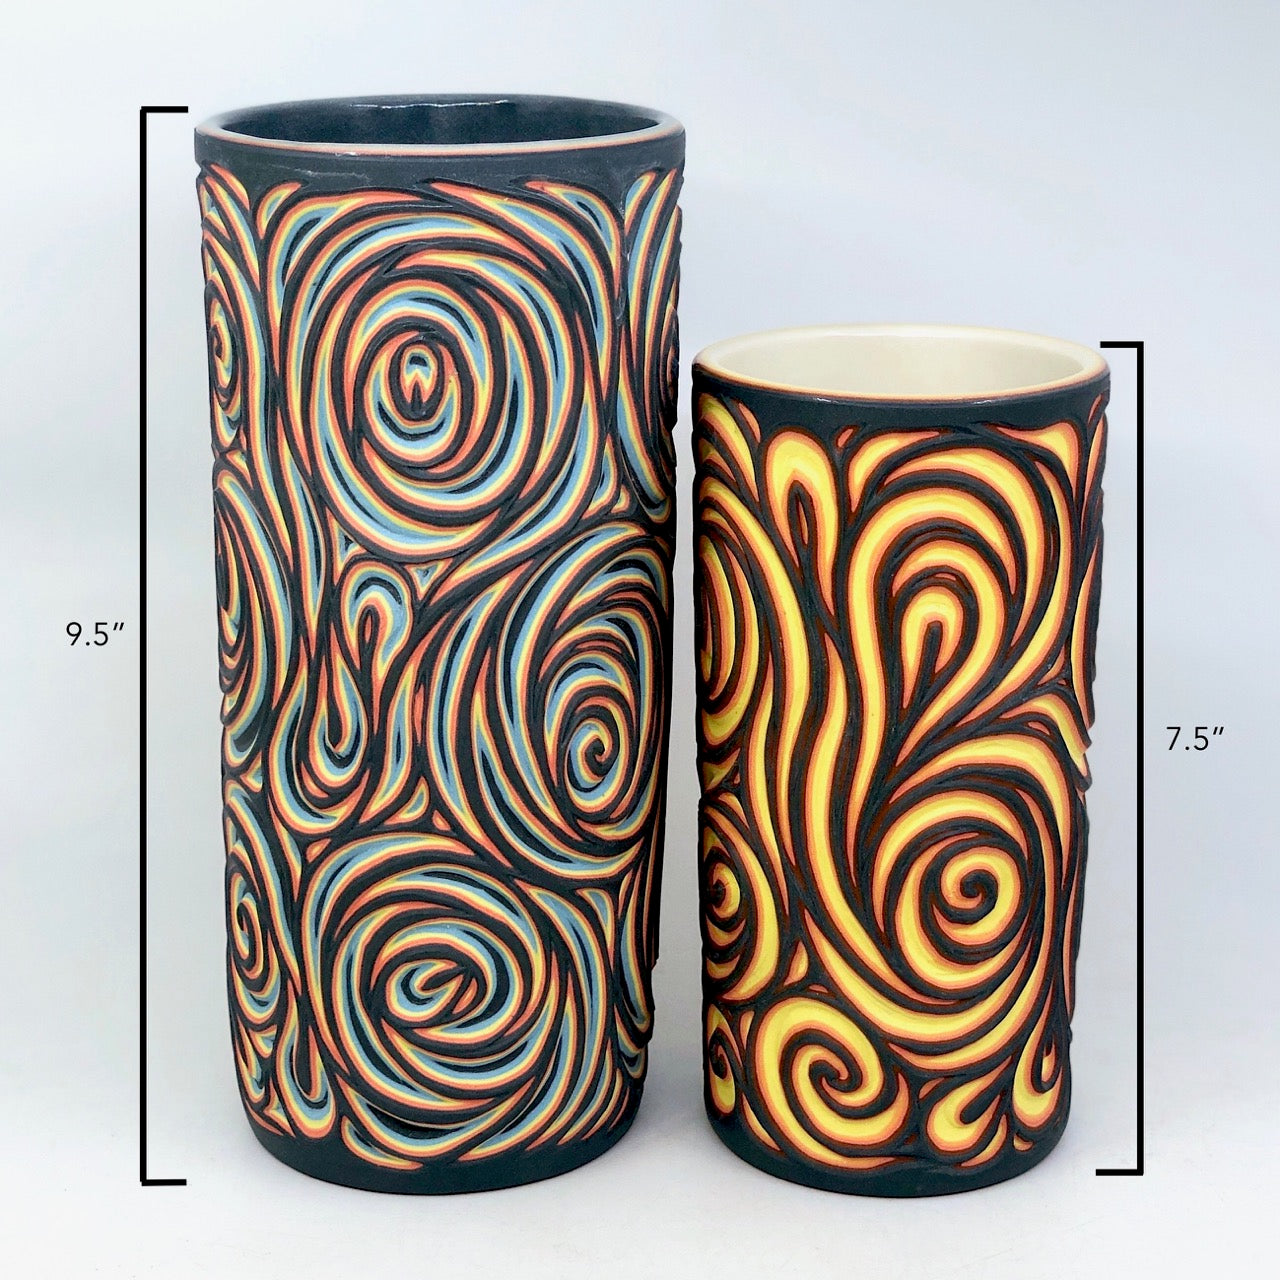 "Large (9.5"") Black & Neon Swirl 5 Layer Column Vase"